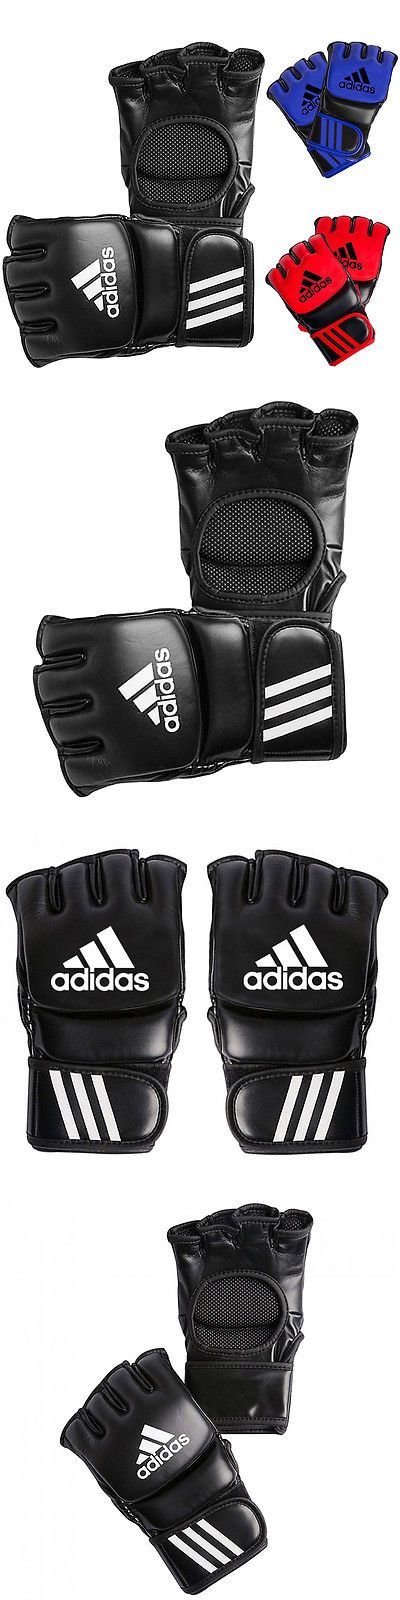 Gloves - Martial Arts 97042: Adidas Amateur Mma Fight Gloves -> BUY IT NOW ONLY: $59.95 on eBay!